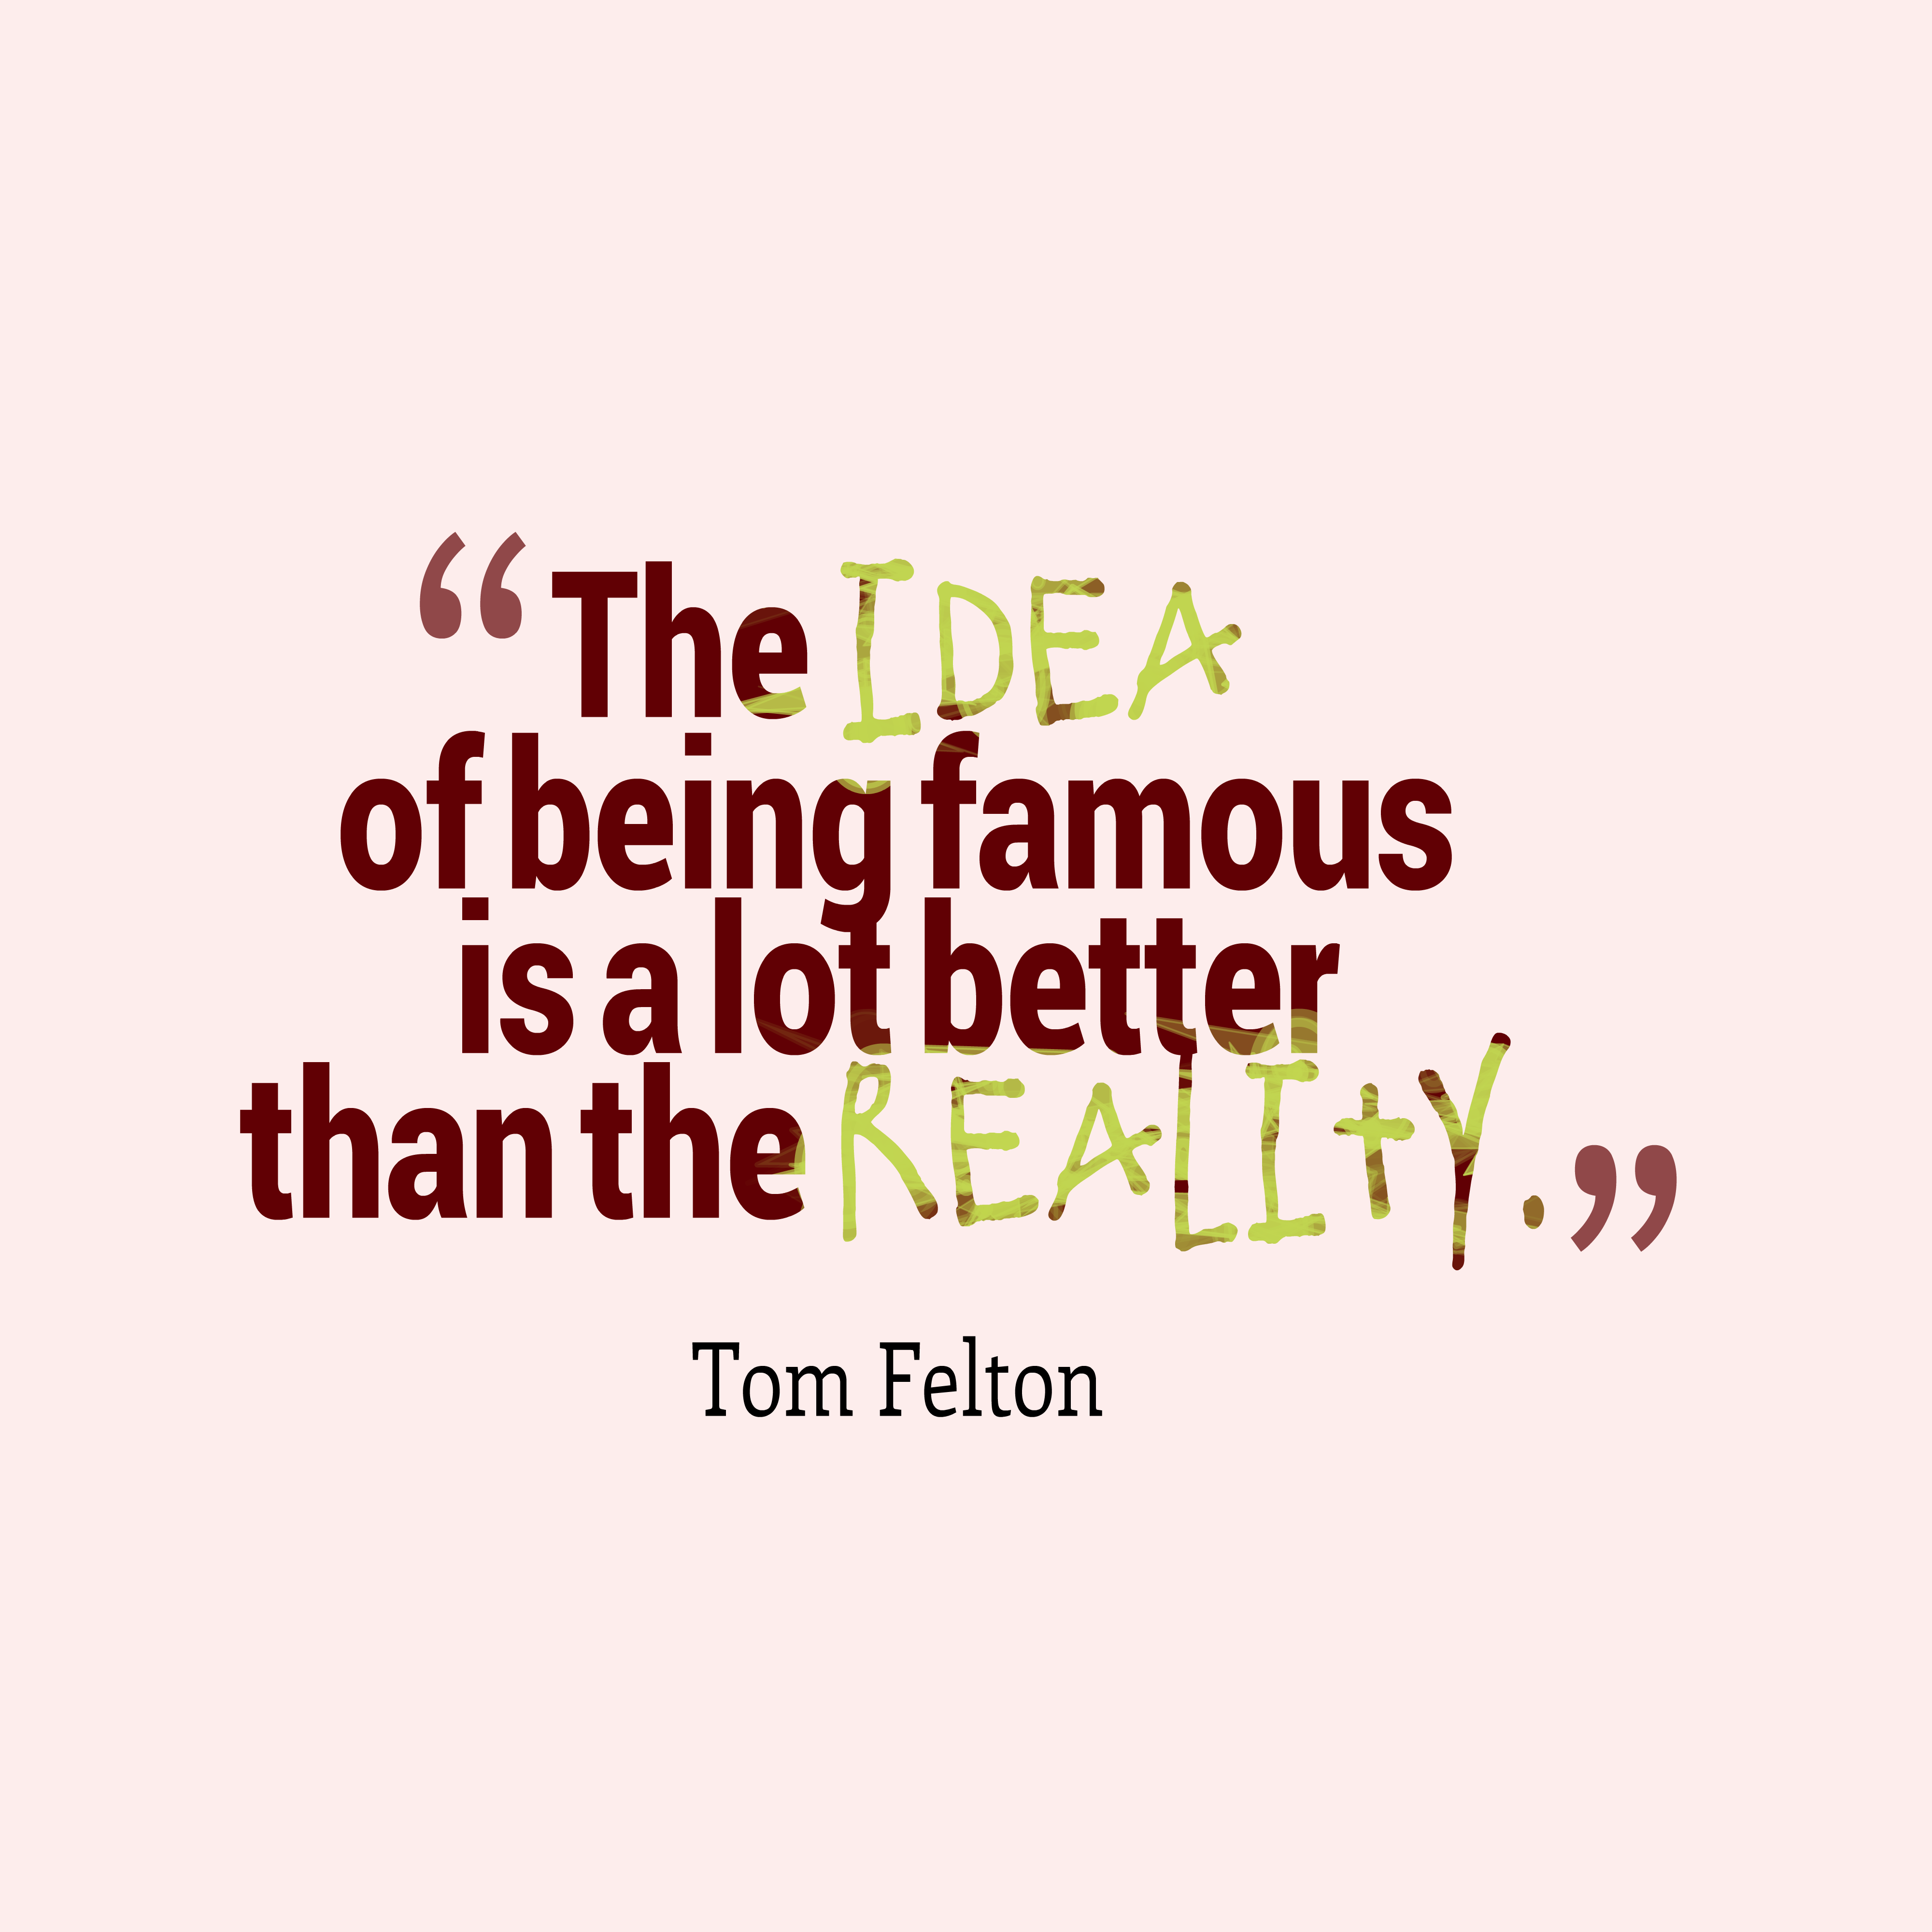 Download Favorite Qoute: Download High Resolution Quotes Picture Maker From Tom